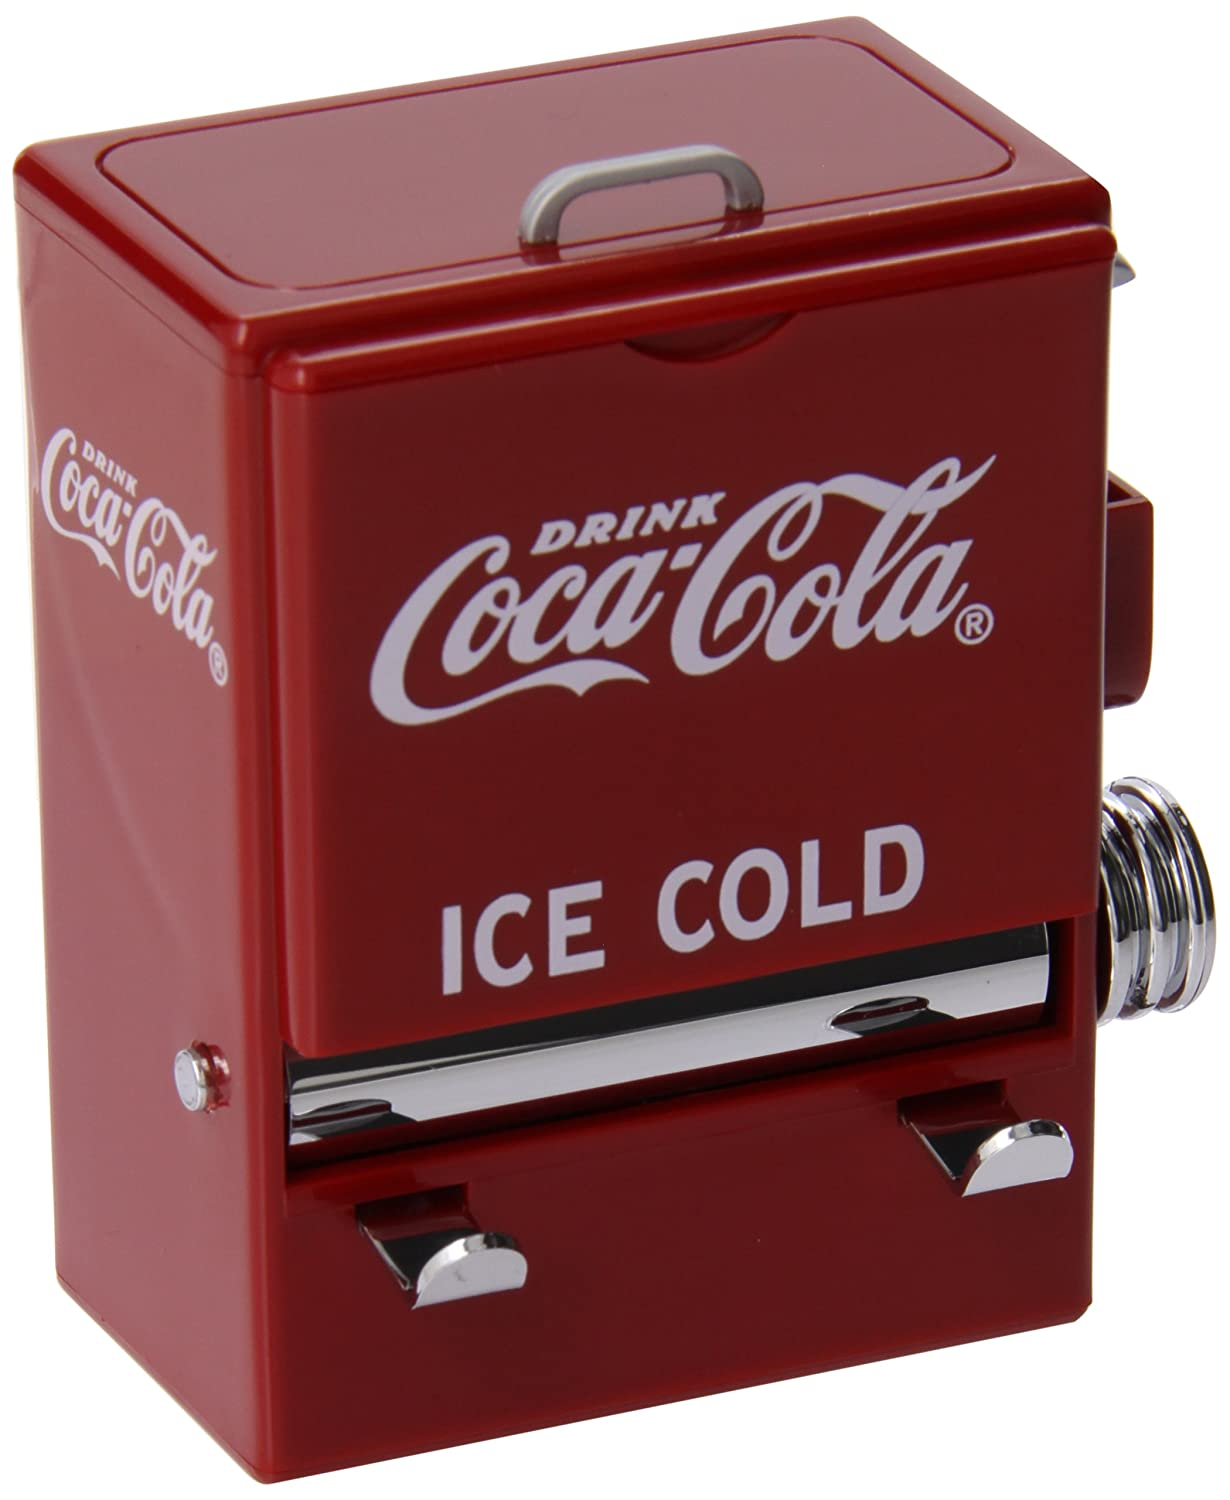 Coca-Cola Vending Machine Toothpick Dispenser